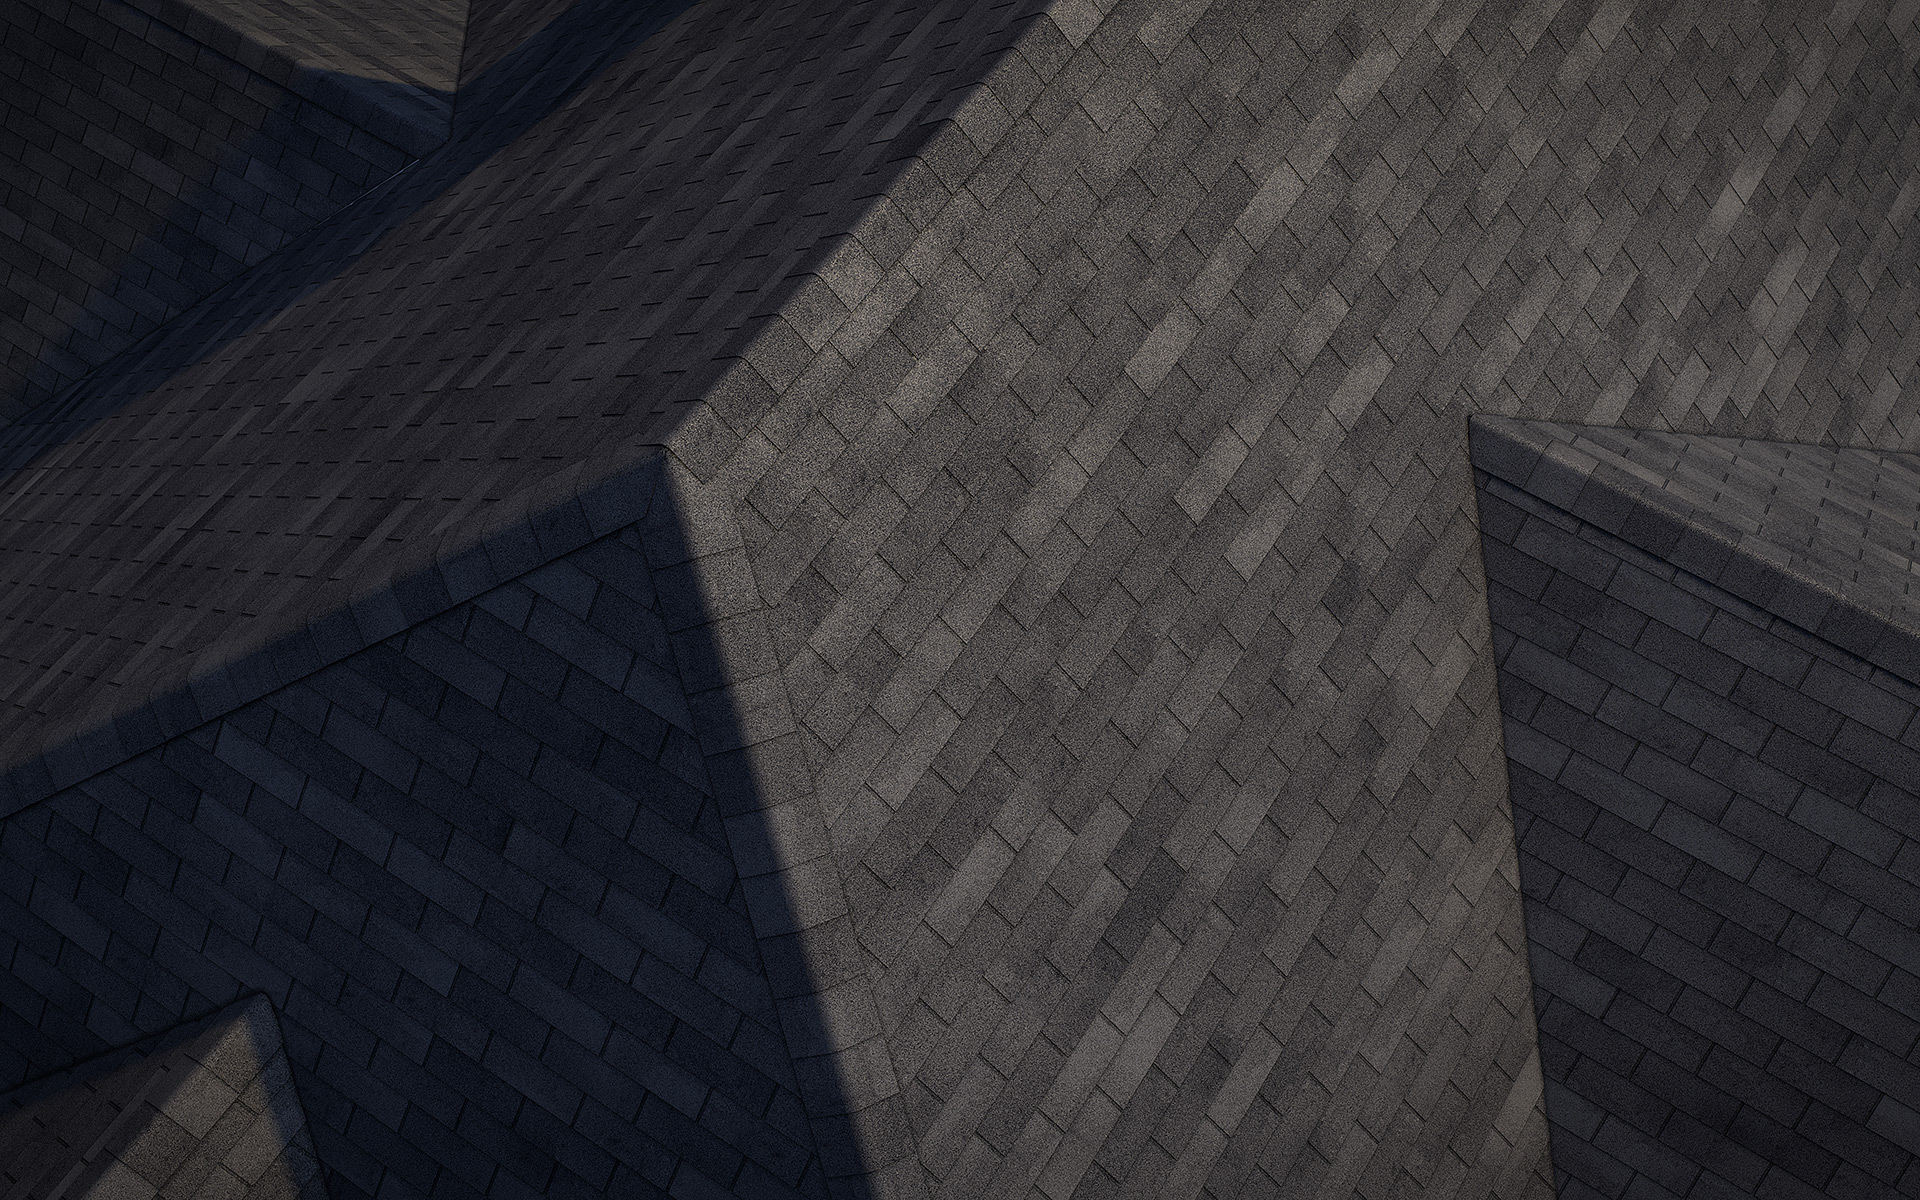 3-tab asphalt roof shingles black color 3D model preset for 3dsmax and RailClone. Rendered with vray, made for arch-viz.